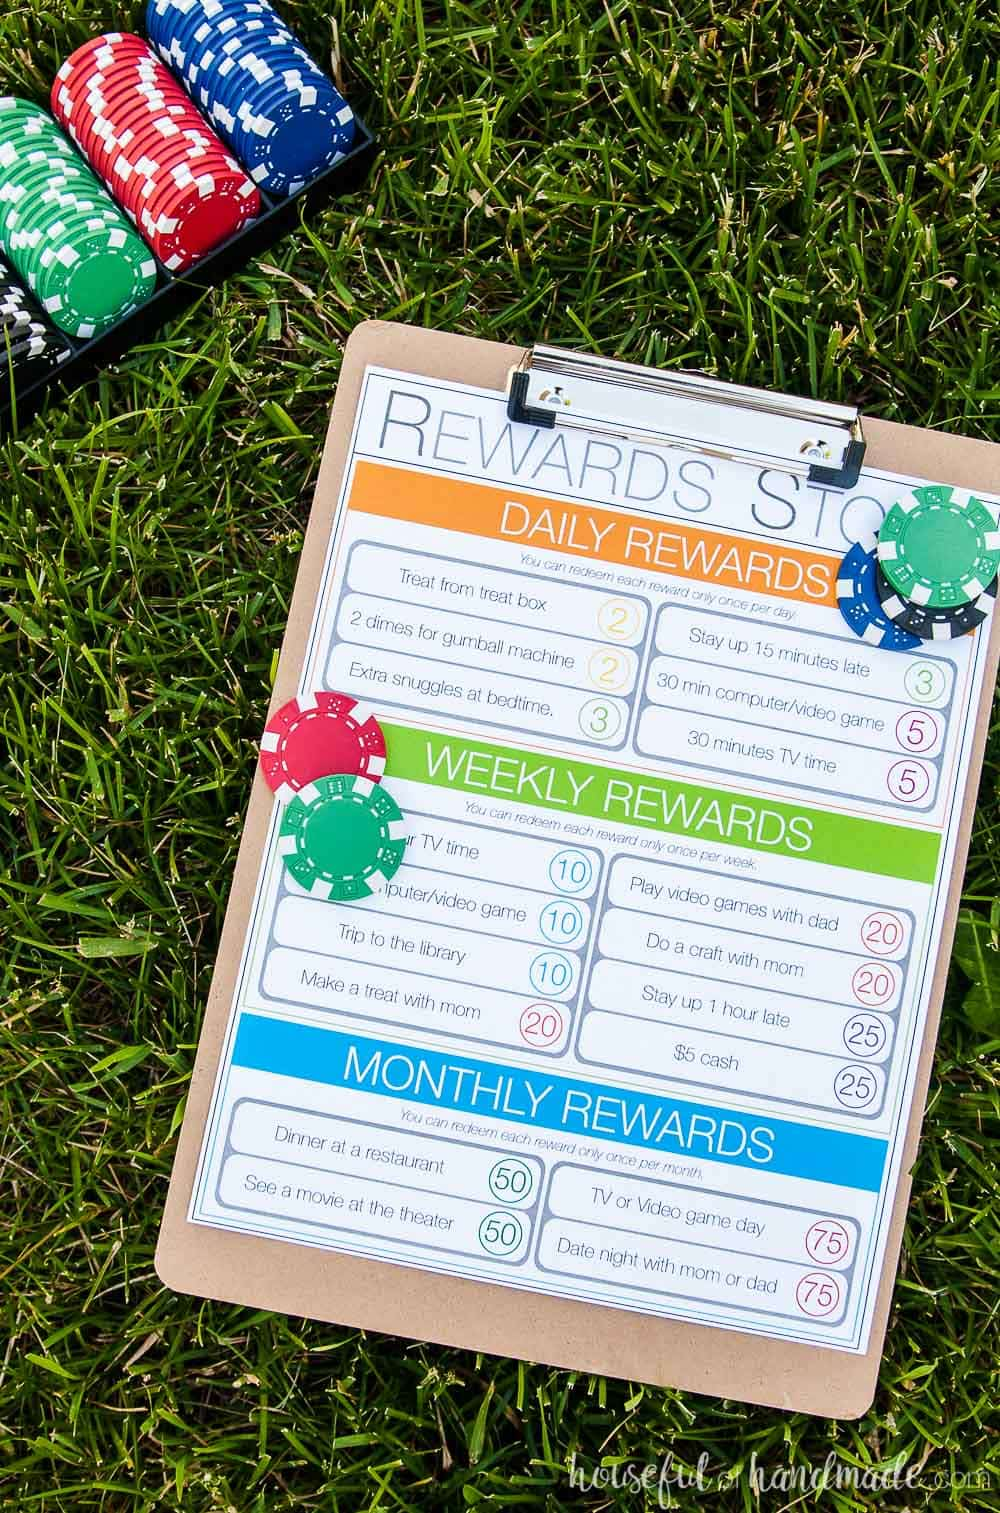 This kids chore system that works includes a reward system to help kids learn how to save up for things they want. Get the free printable chore charts at Housefulofhandmade.com.